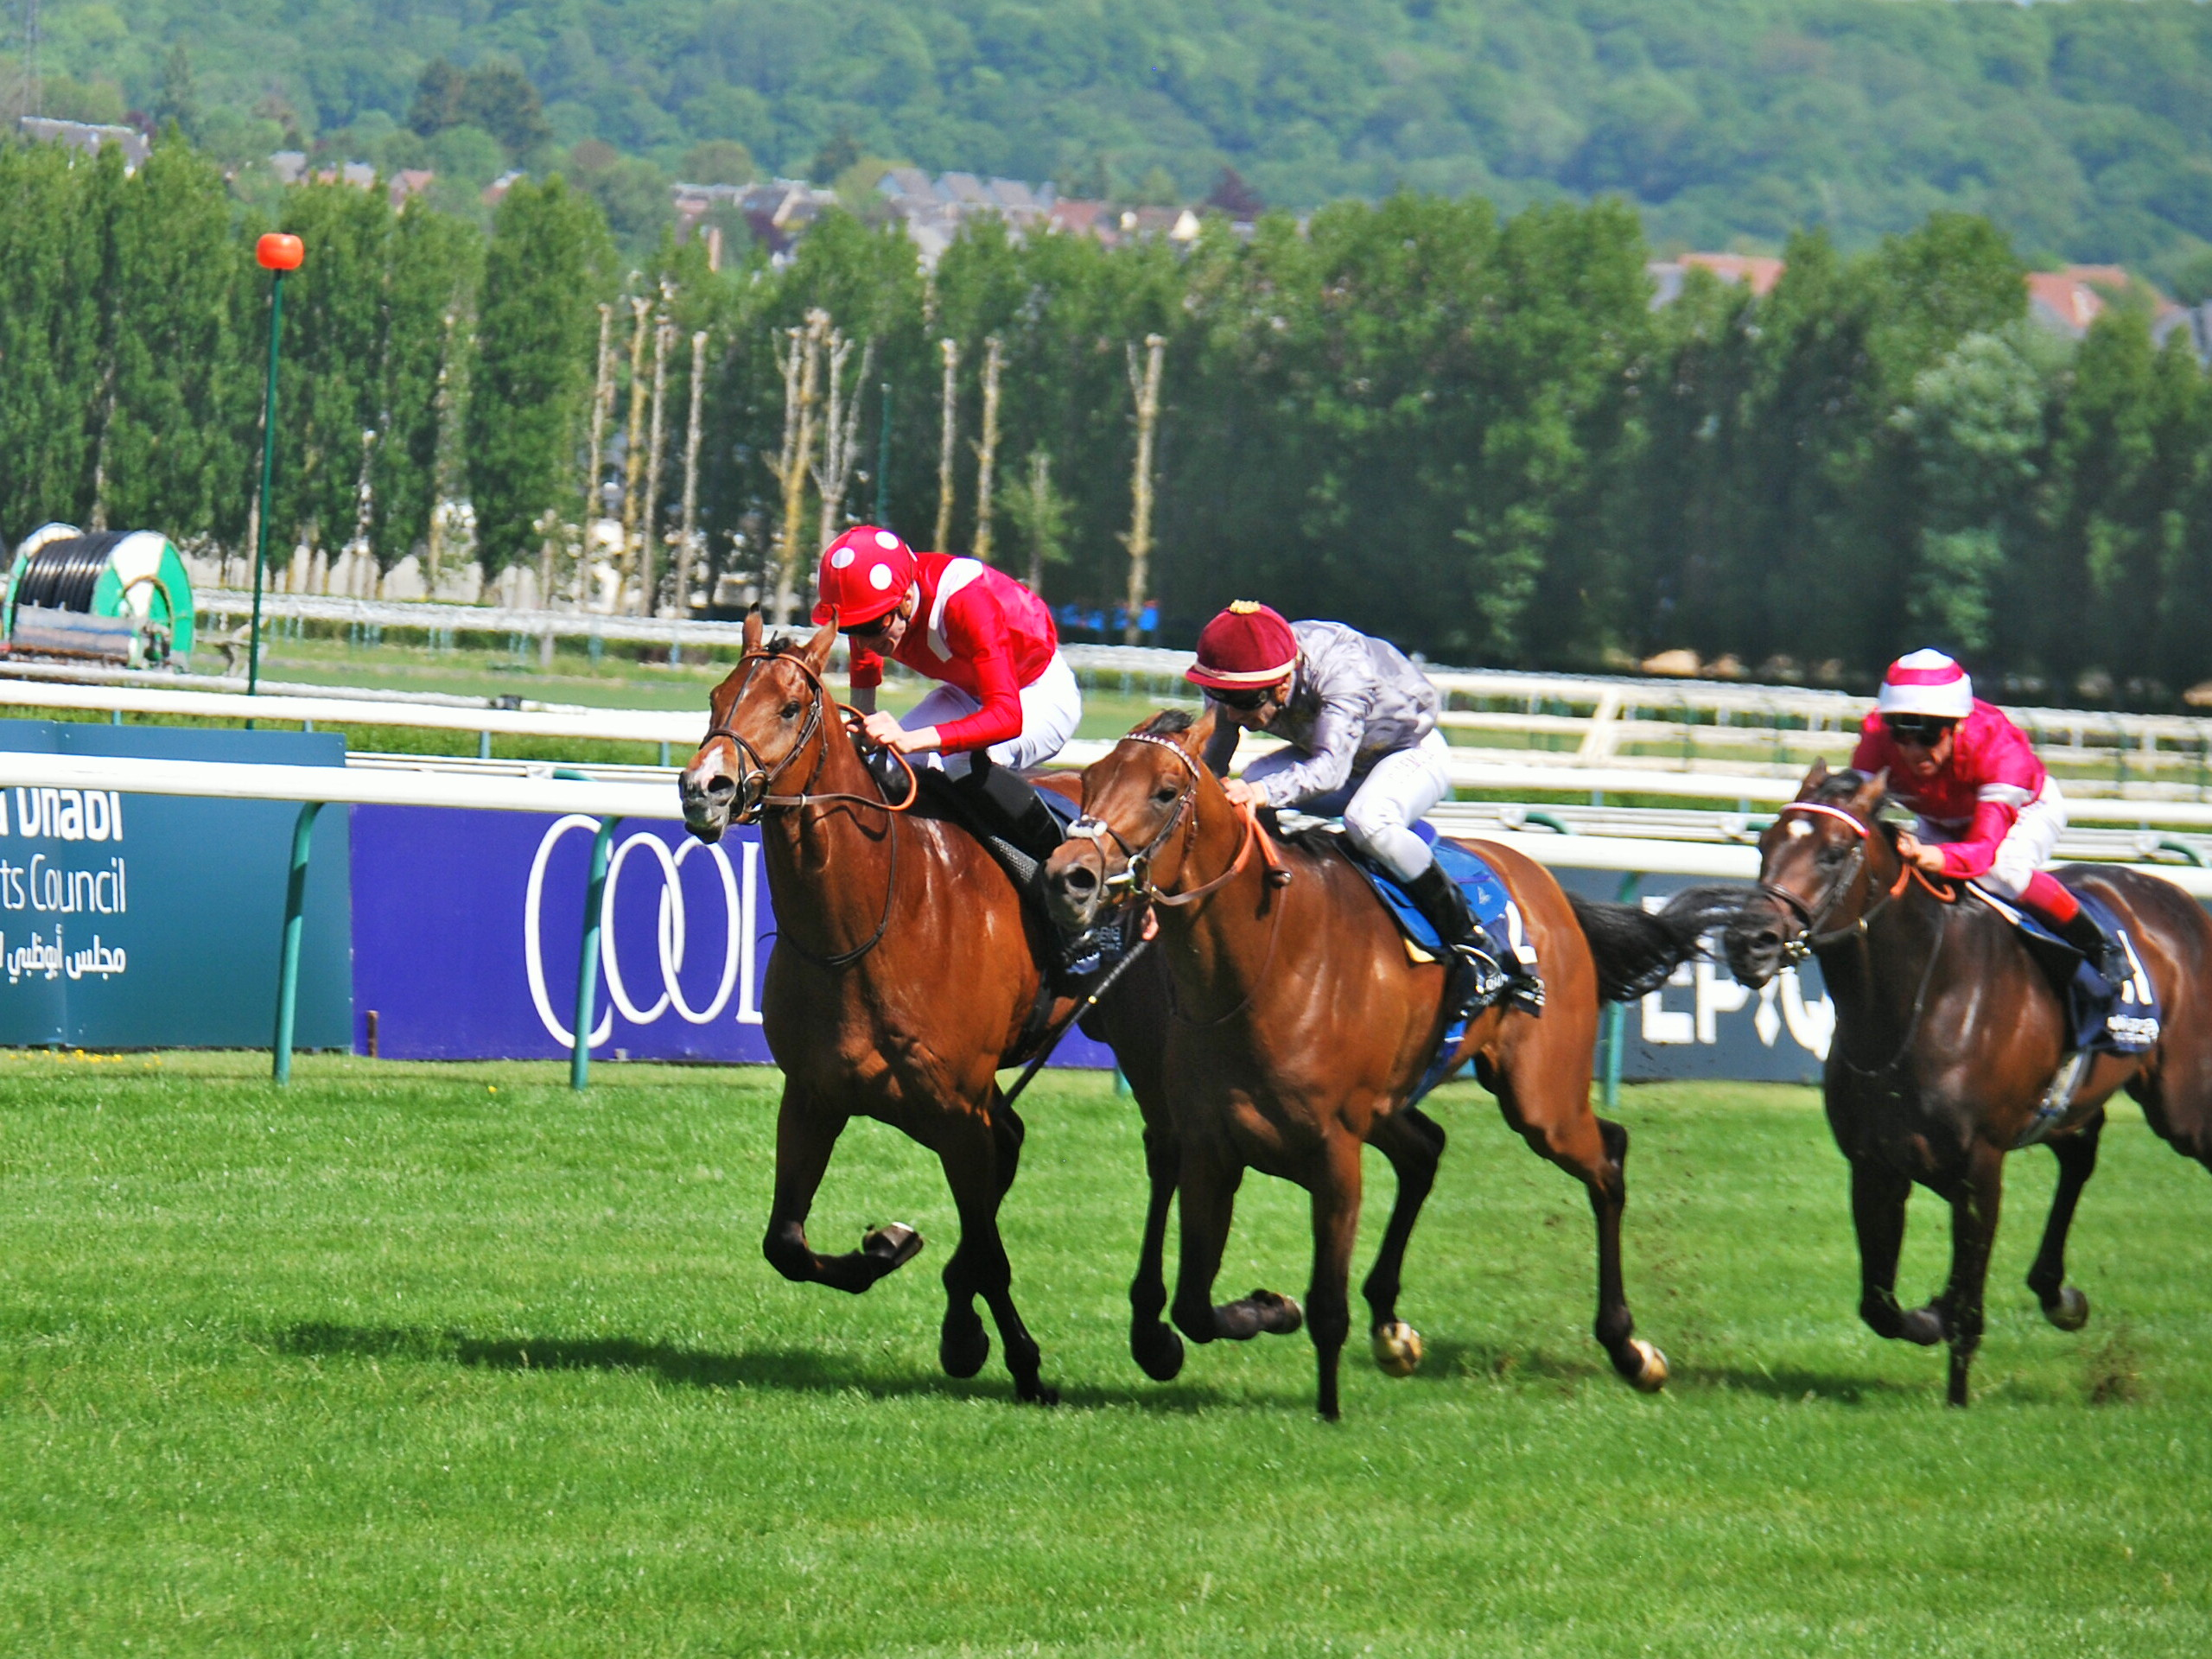 Contender: Brametot (centre) winning the Poule d'Essai des Poulains at Deauville from the Andre Fabre-trained Le Brivido (left) and Rivet. Photo: John Gilmore